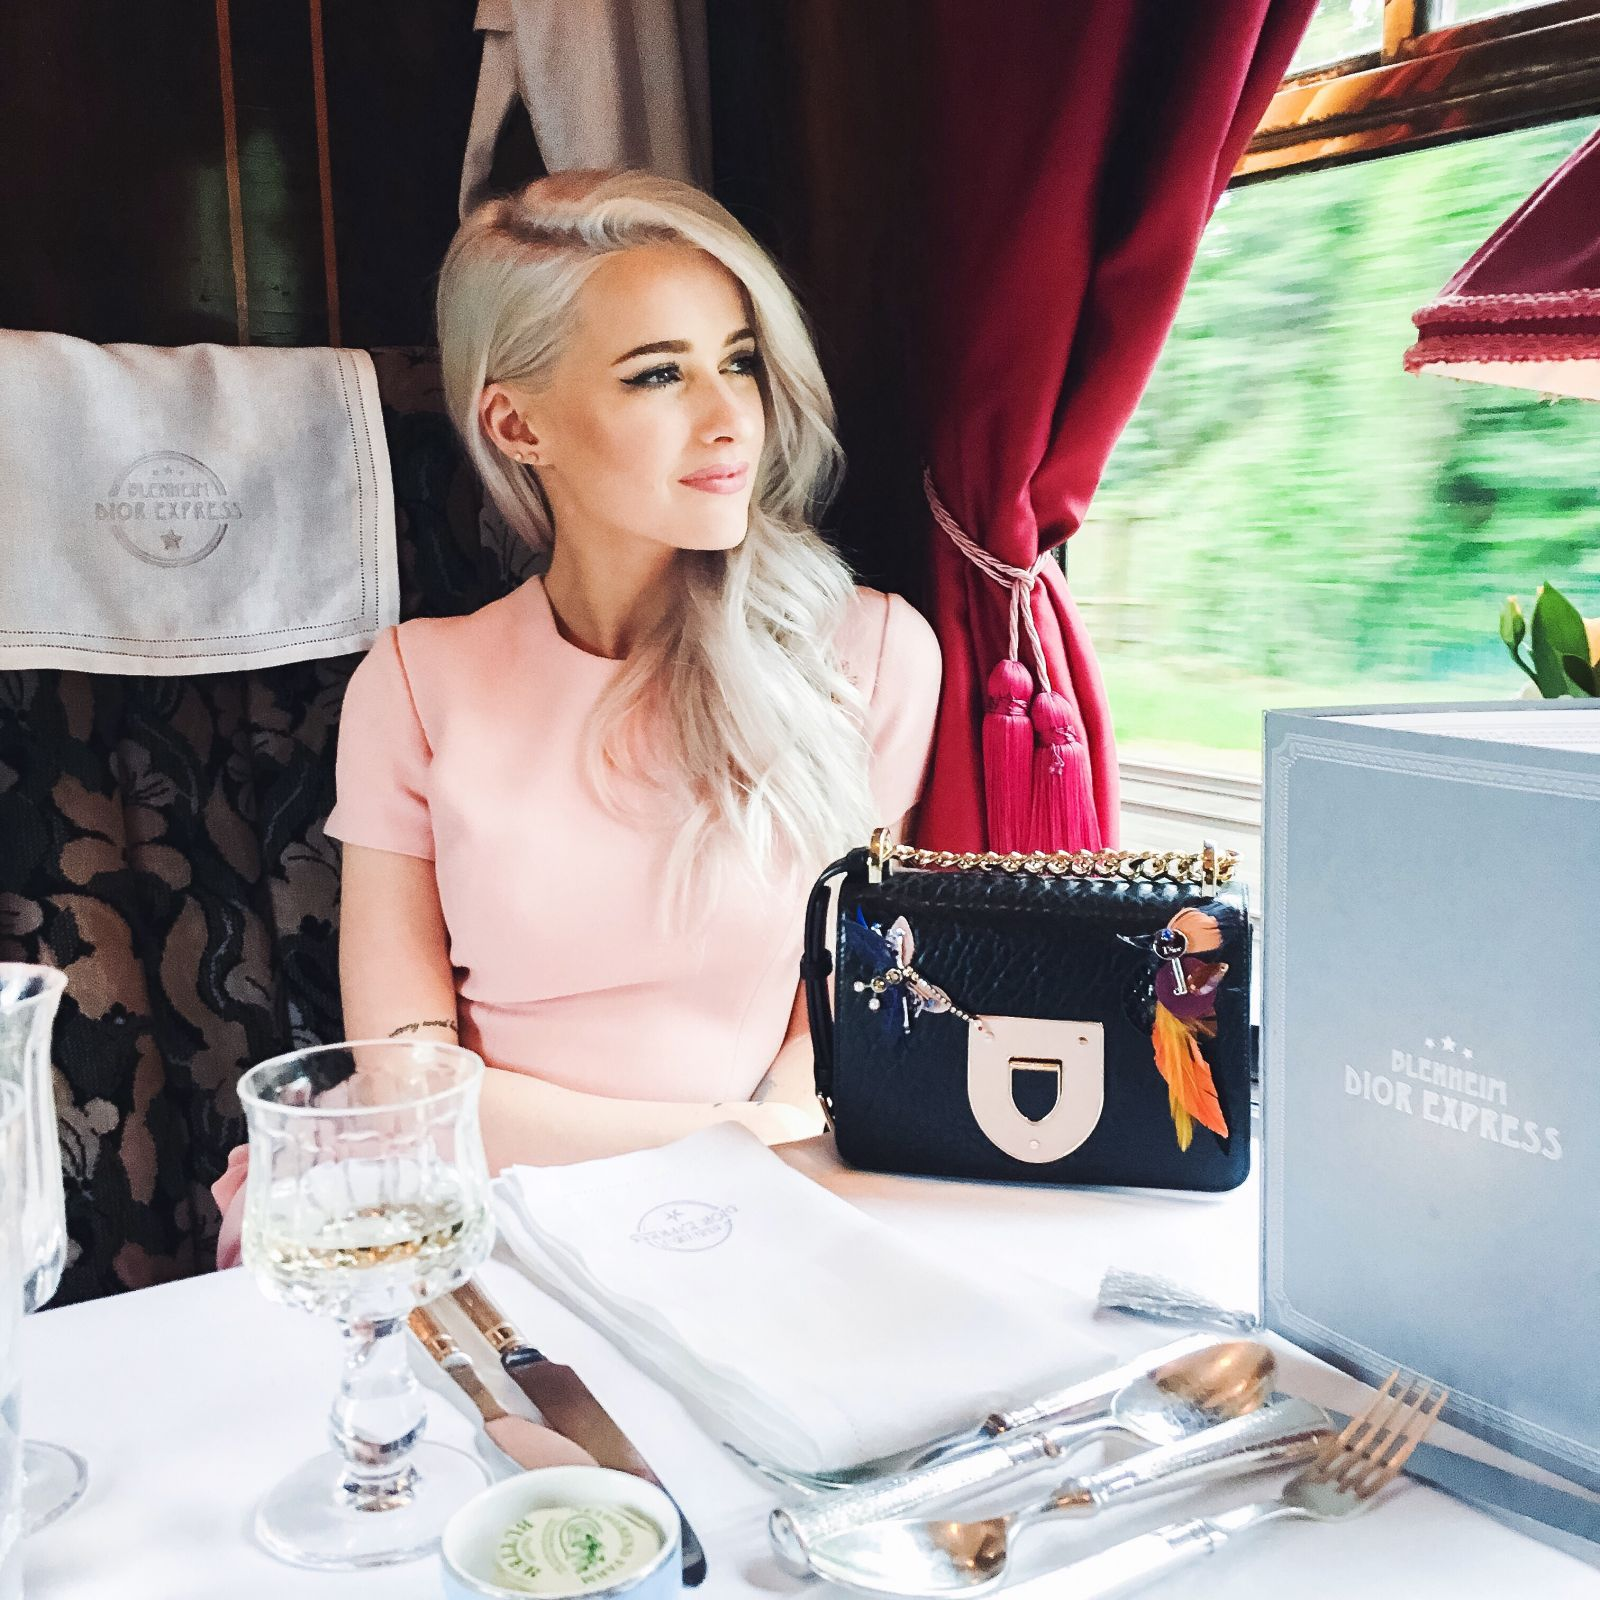 inthefrow on the Dior Express to Blenheim Palace